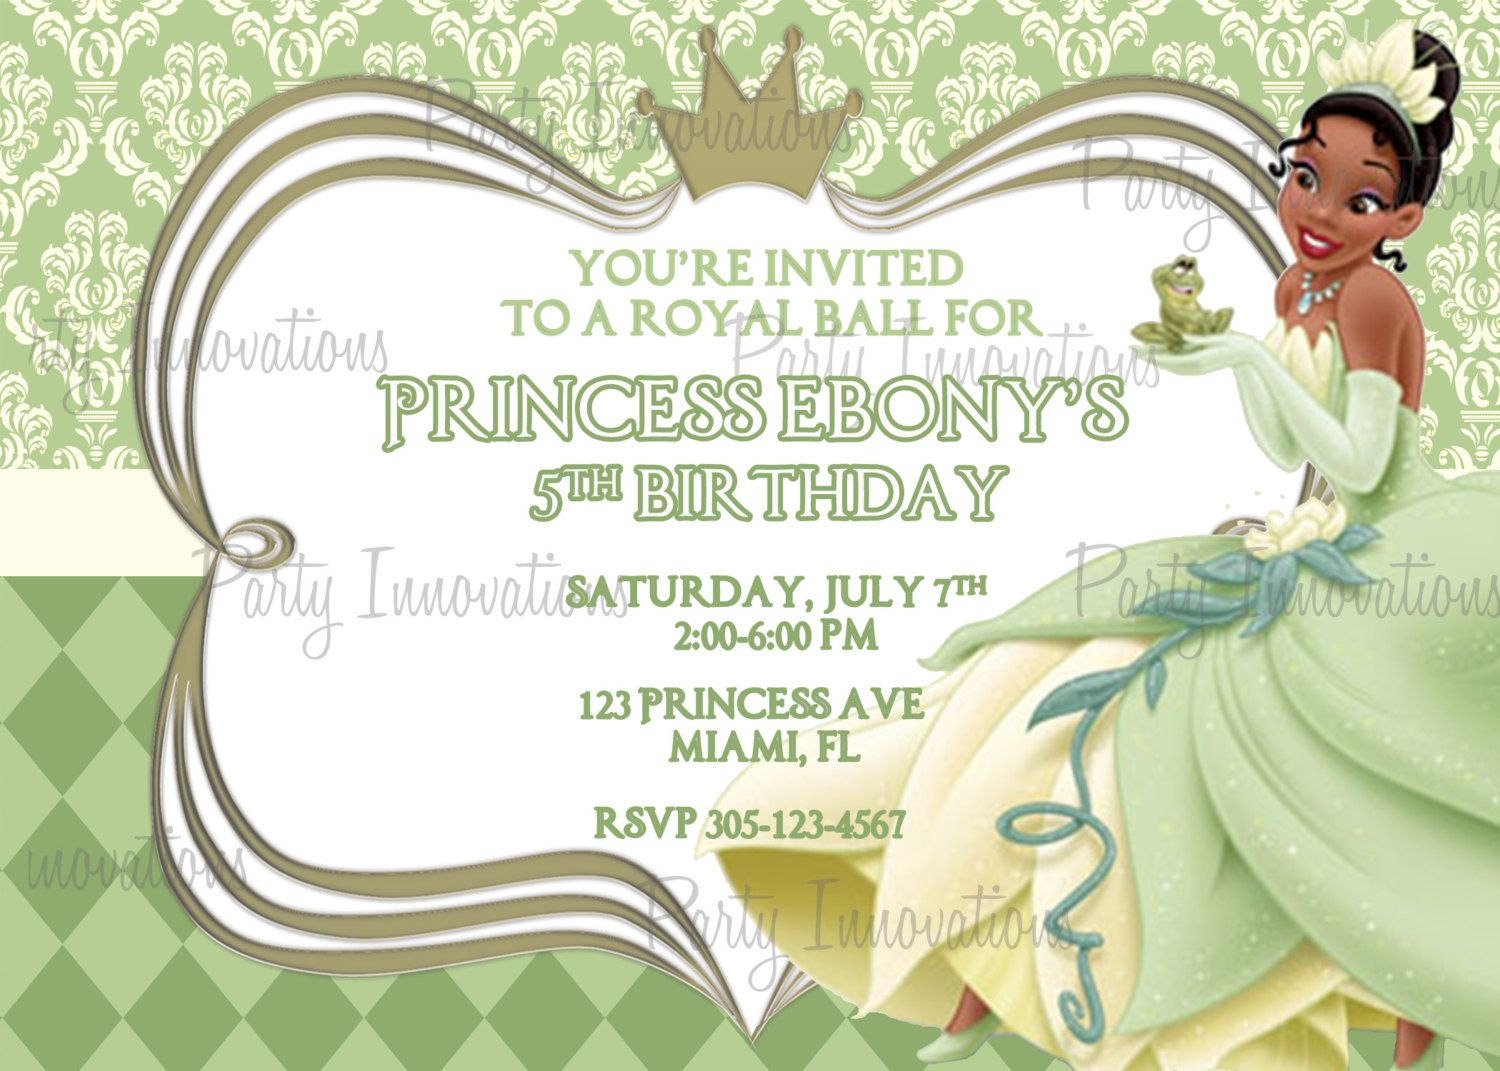 princess tiana invitations princess tiana party princess tiana invitations